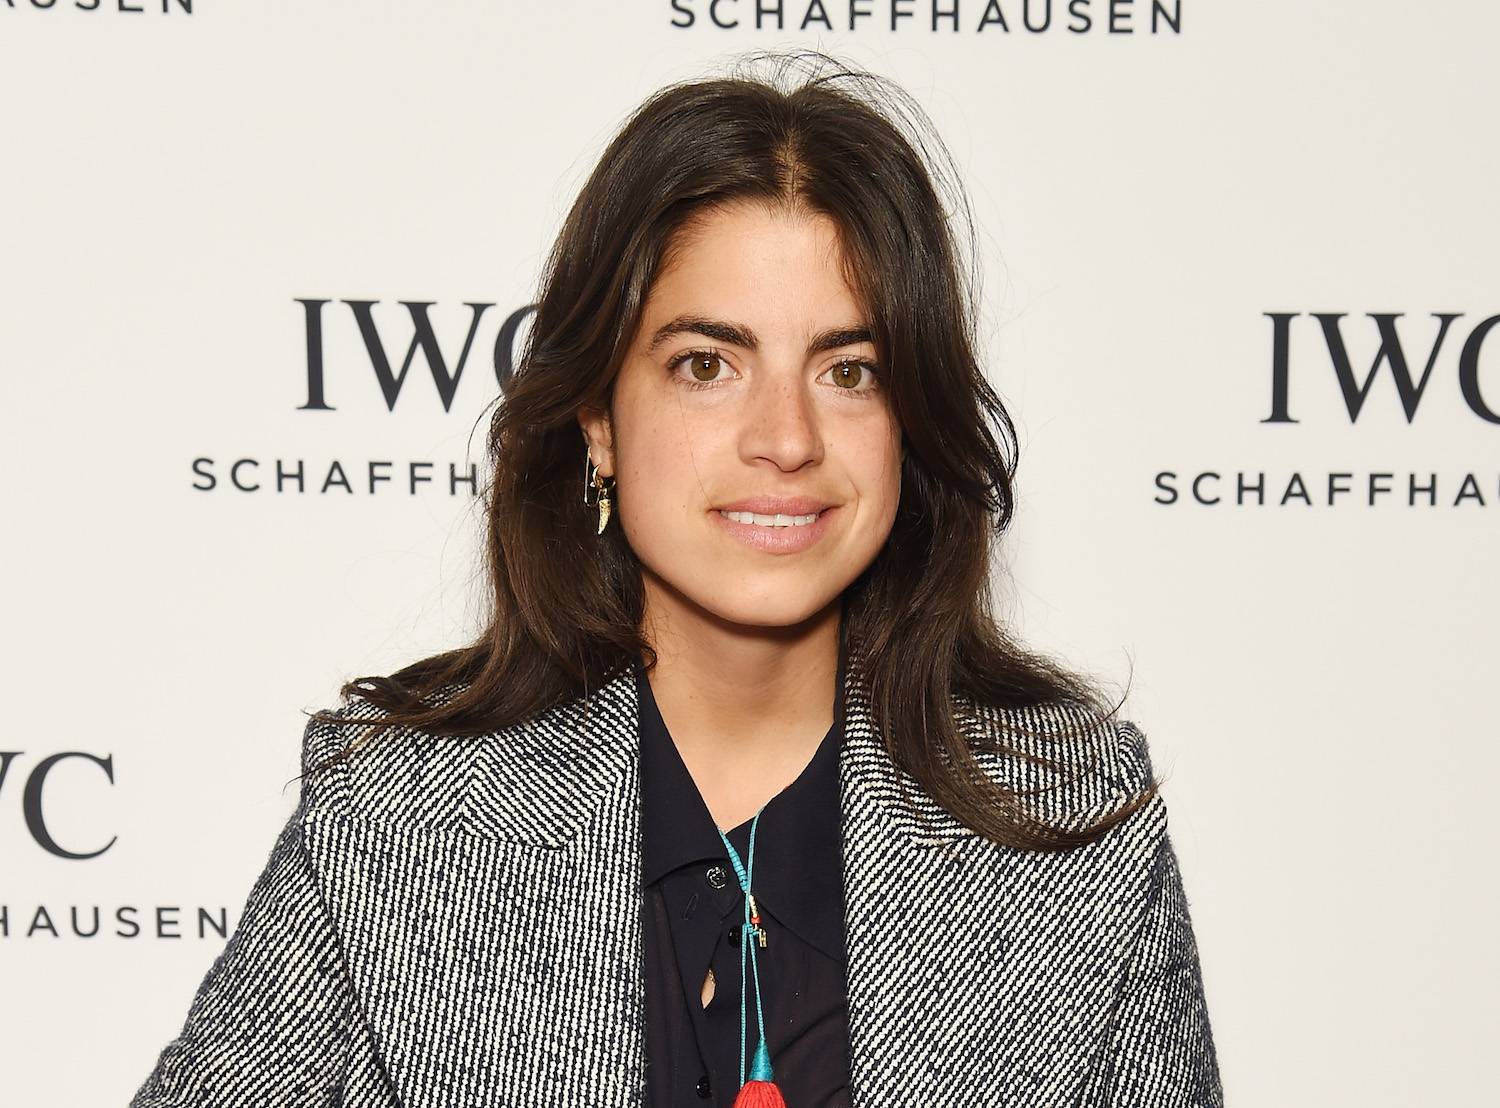 Man Repellers Leandra Medine is pregnant with twins Marie Claire